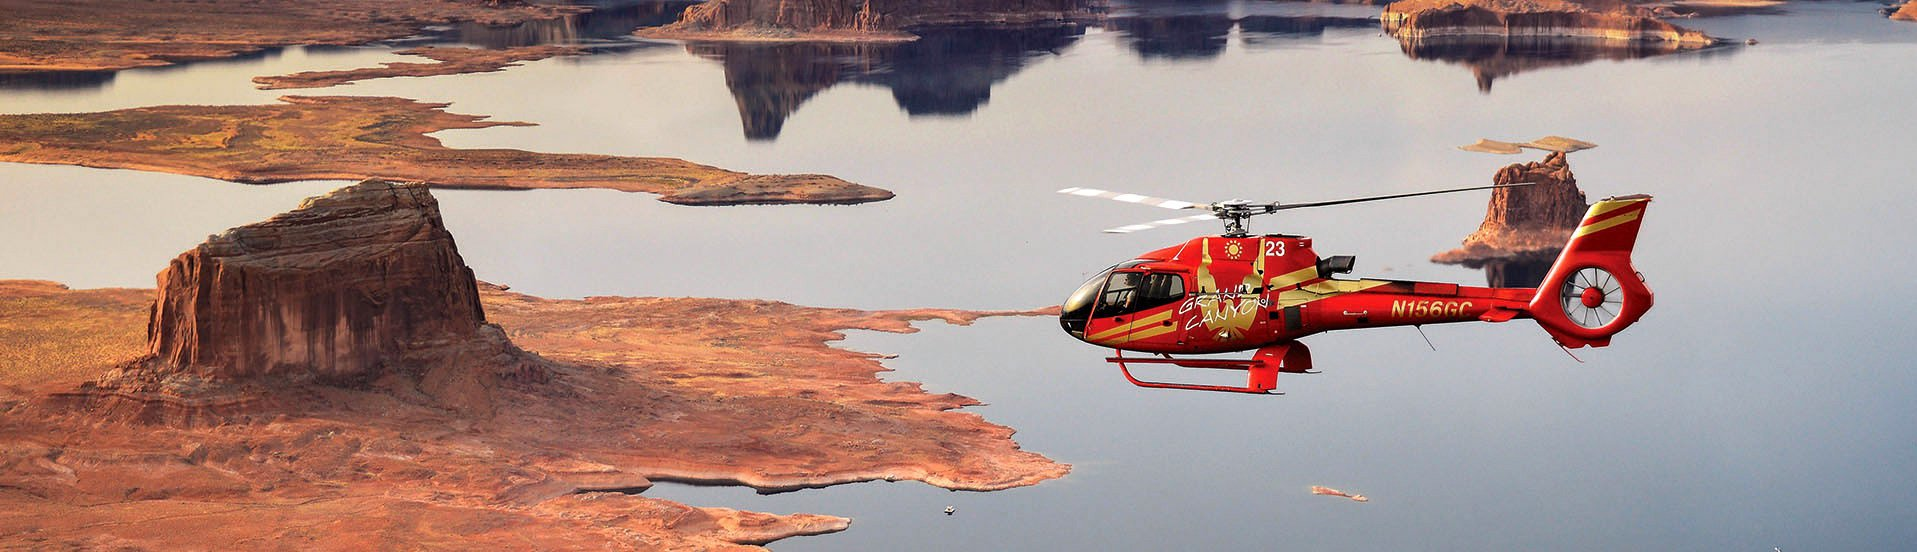 Heli Air/Ground with Antelope Canyon Tour